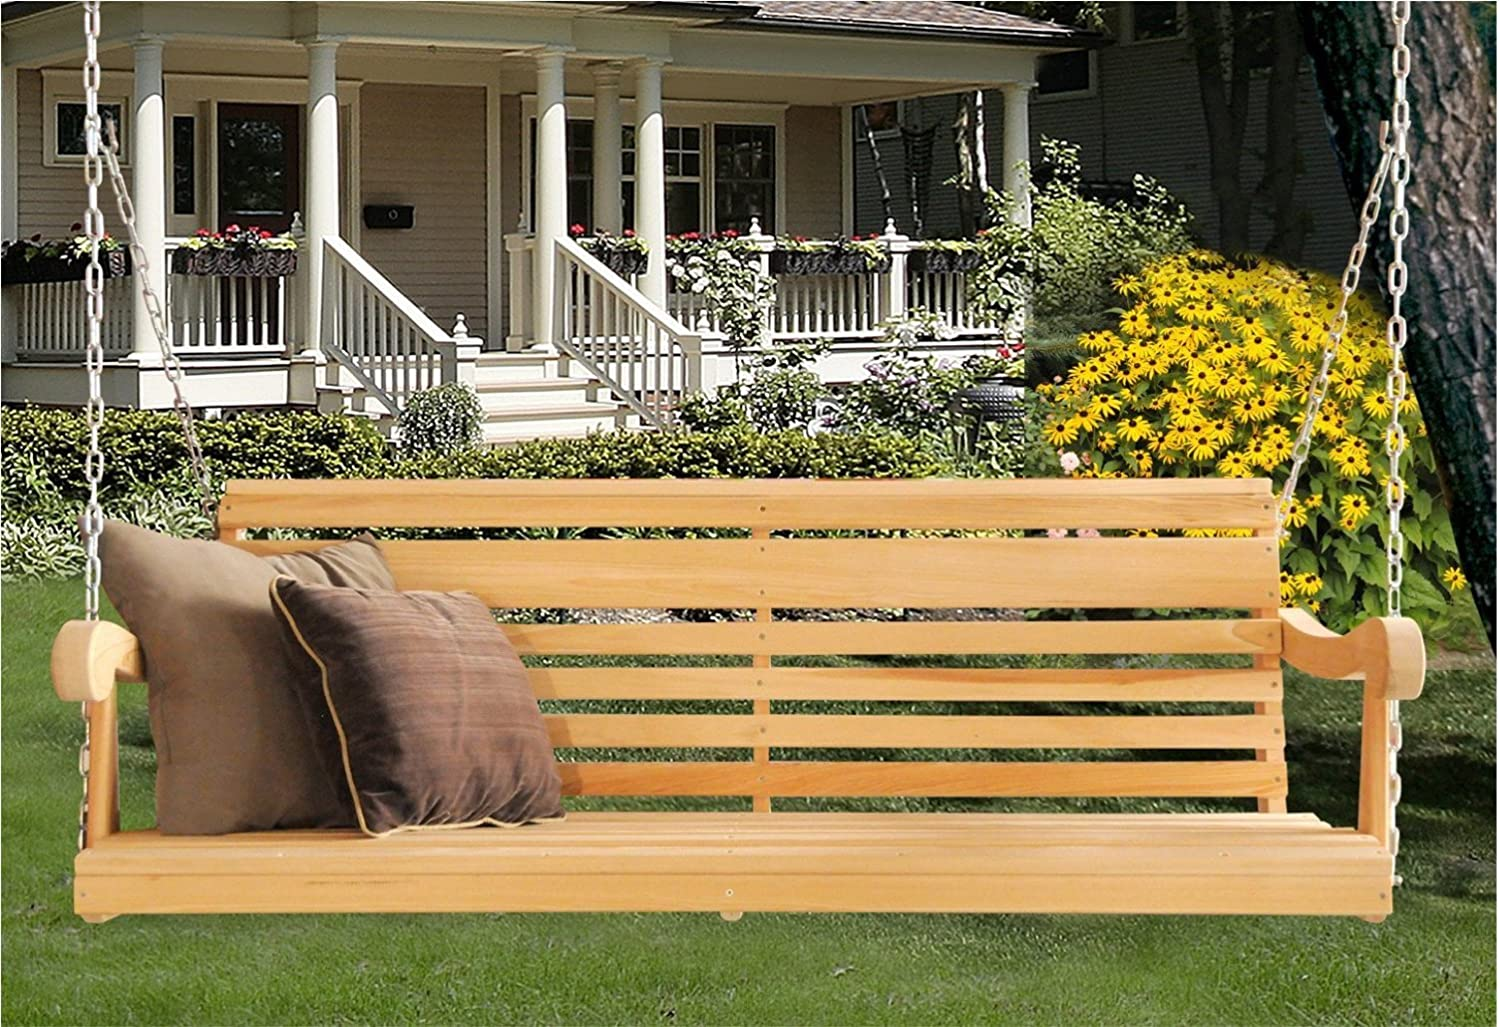 5 Ft LOUISIANA CYPRESS PORCH SWING Scandinavian Grandpa Style MADE from Hand selected Rot-resistant CYPRESS WOOD Chains Included